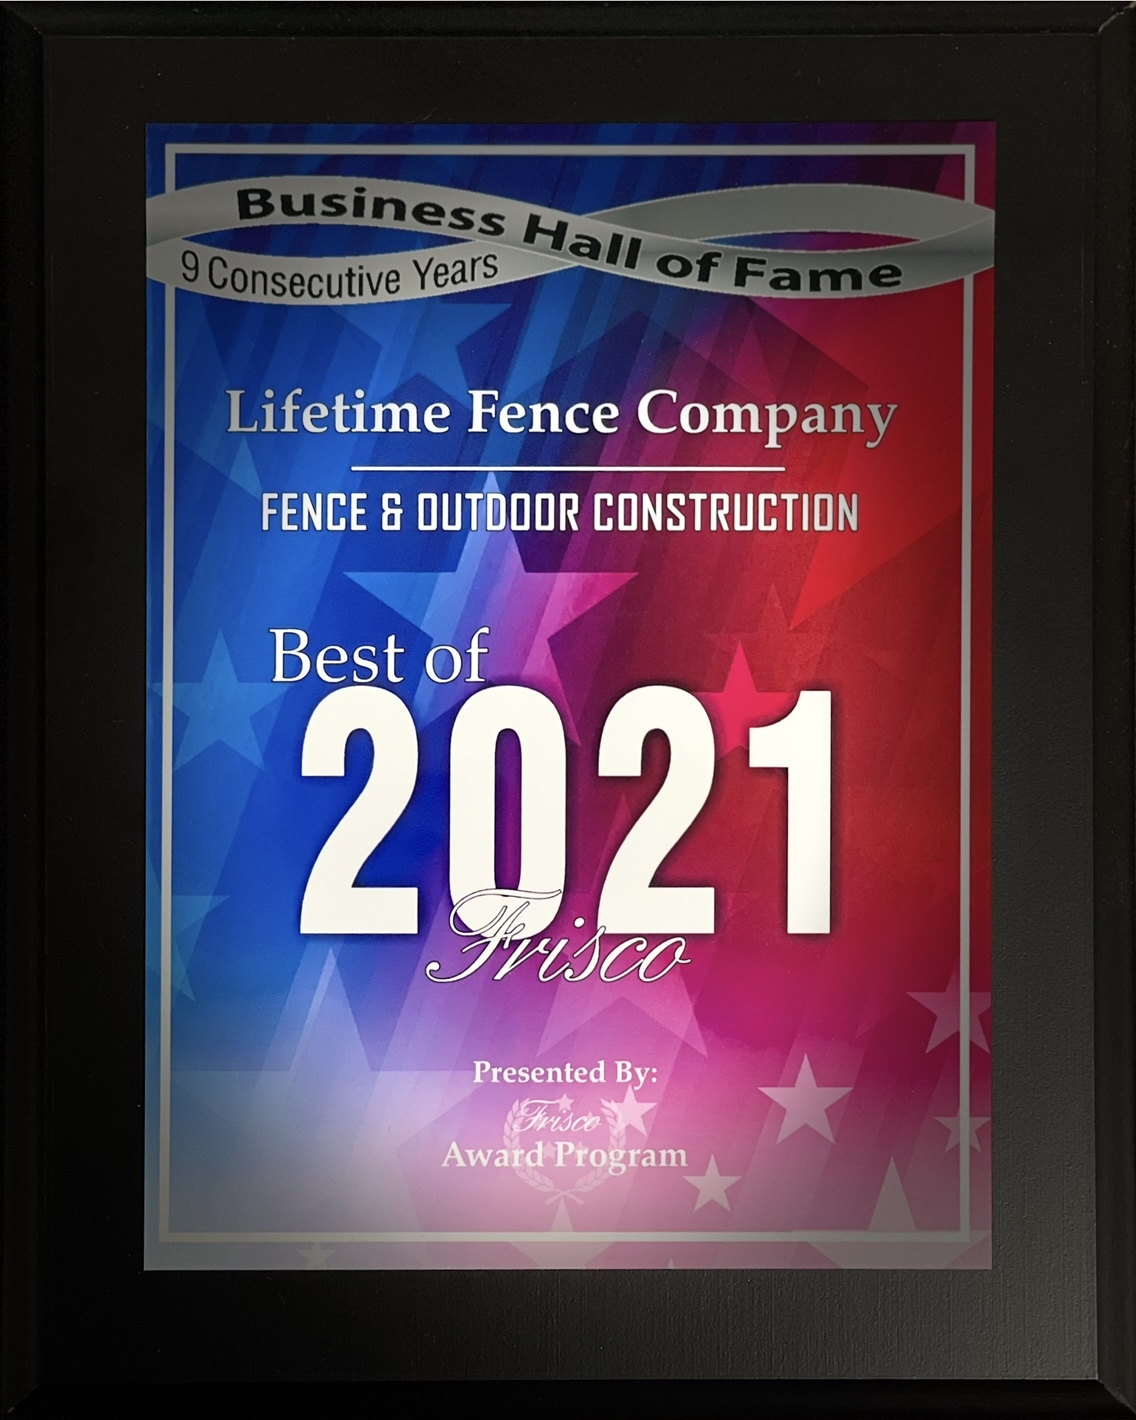 Lifetime Fence Company is the Best Fence Company in Lewisville TX